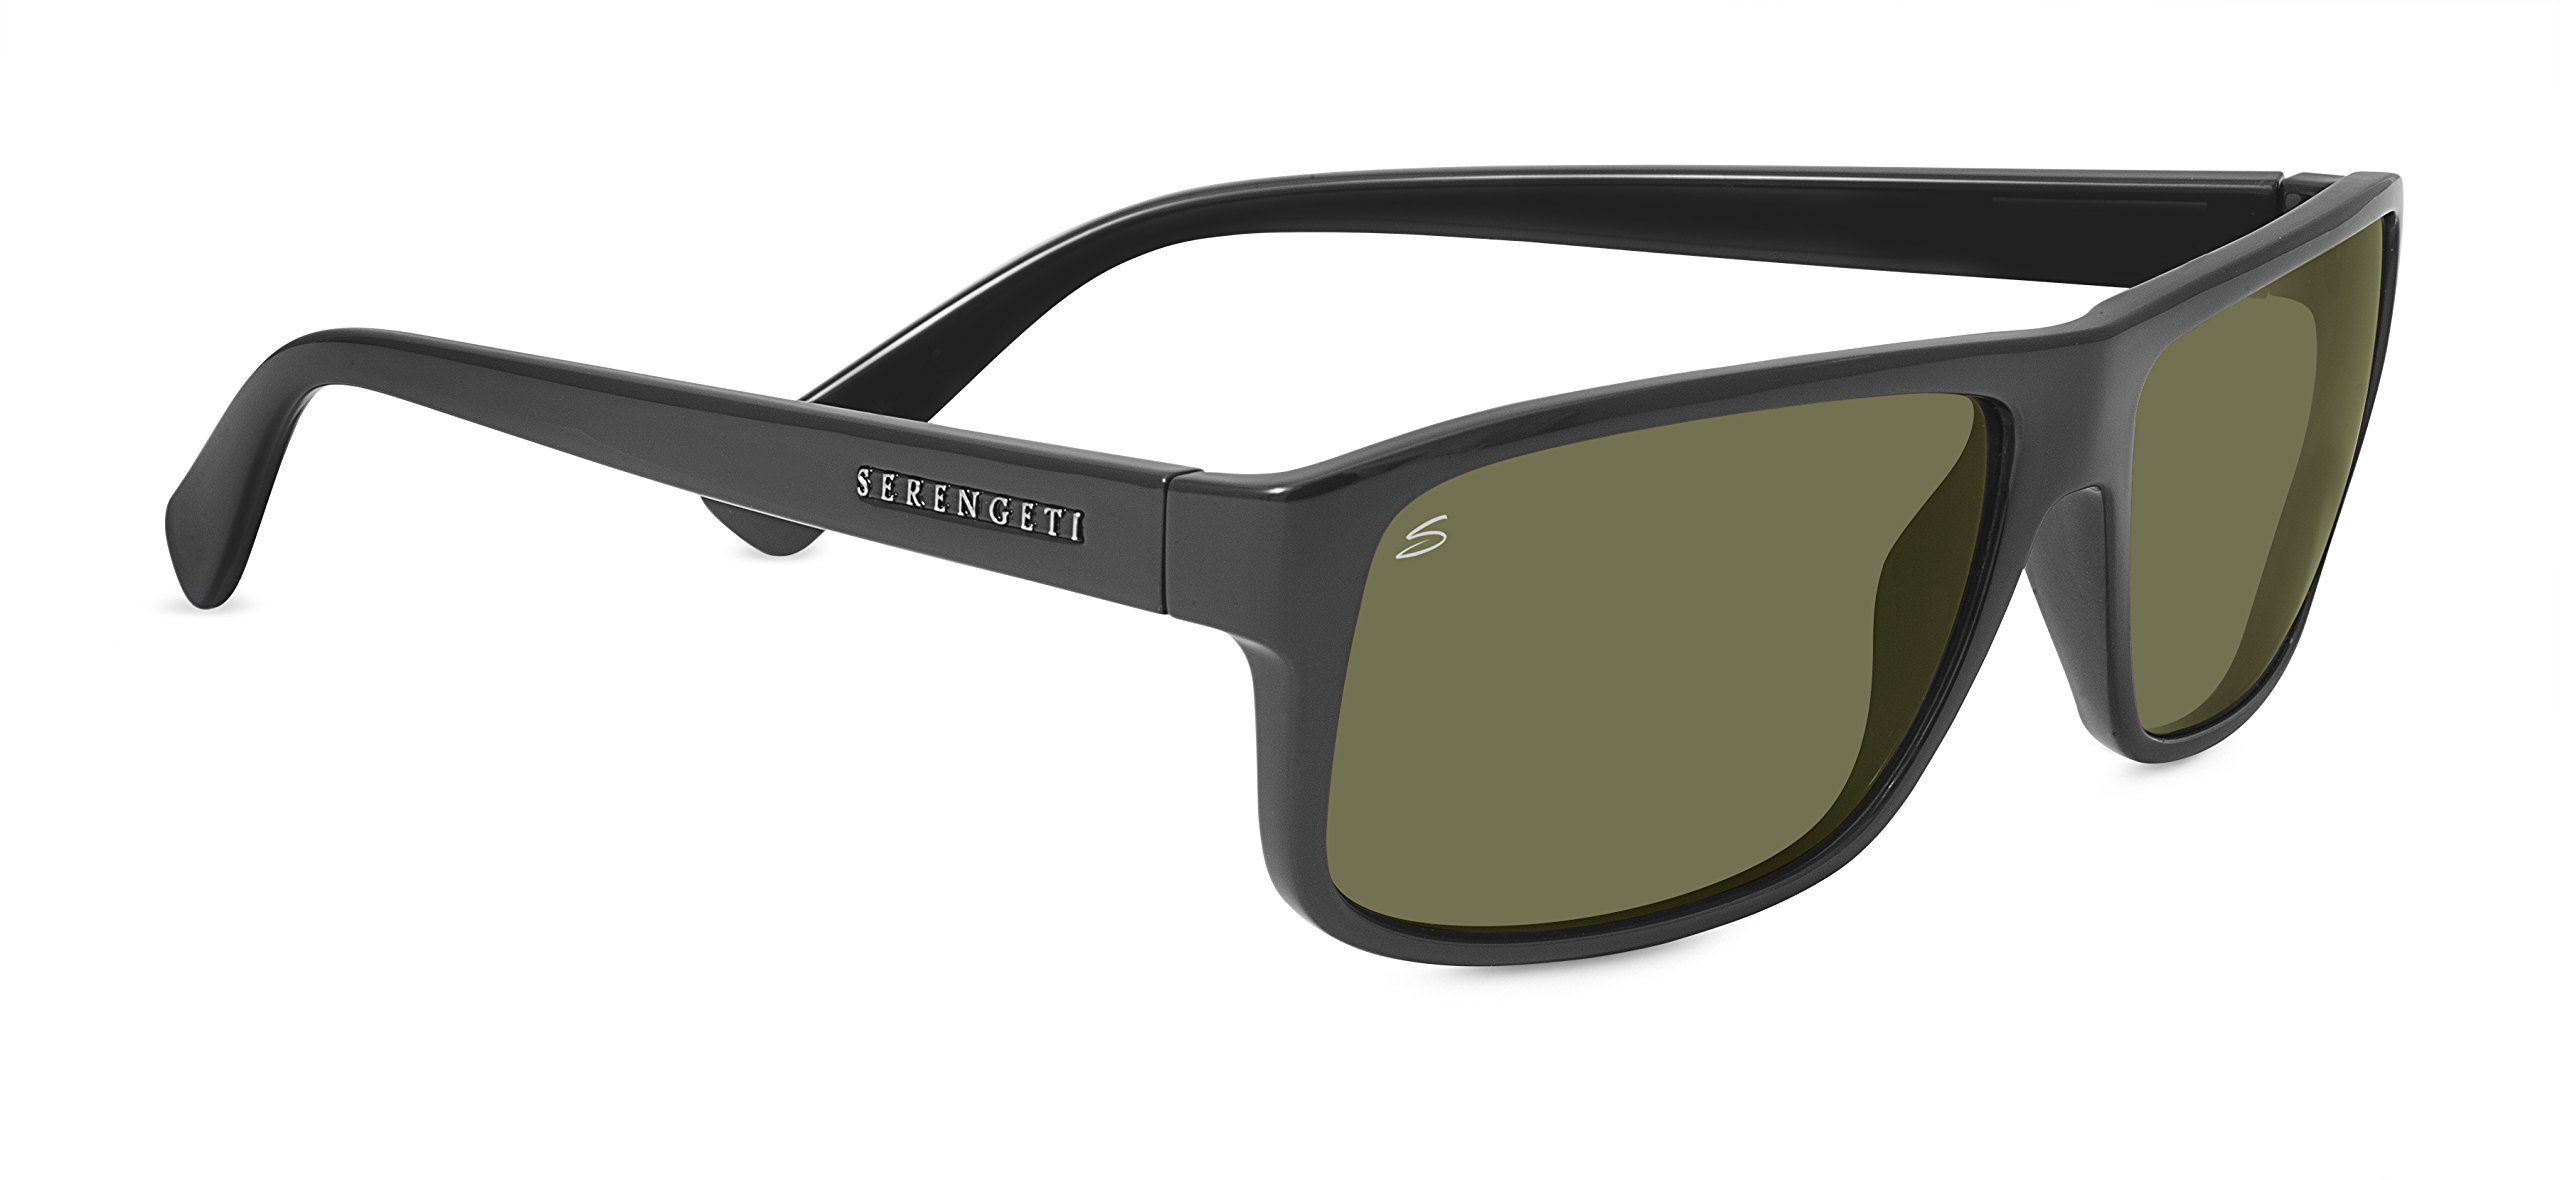 Serengeti 8087 Claudio, Satin Dark Gray Frame, Polarized Sedona Lens